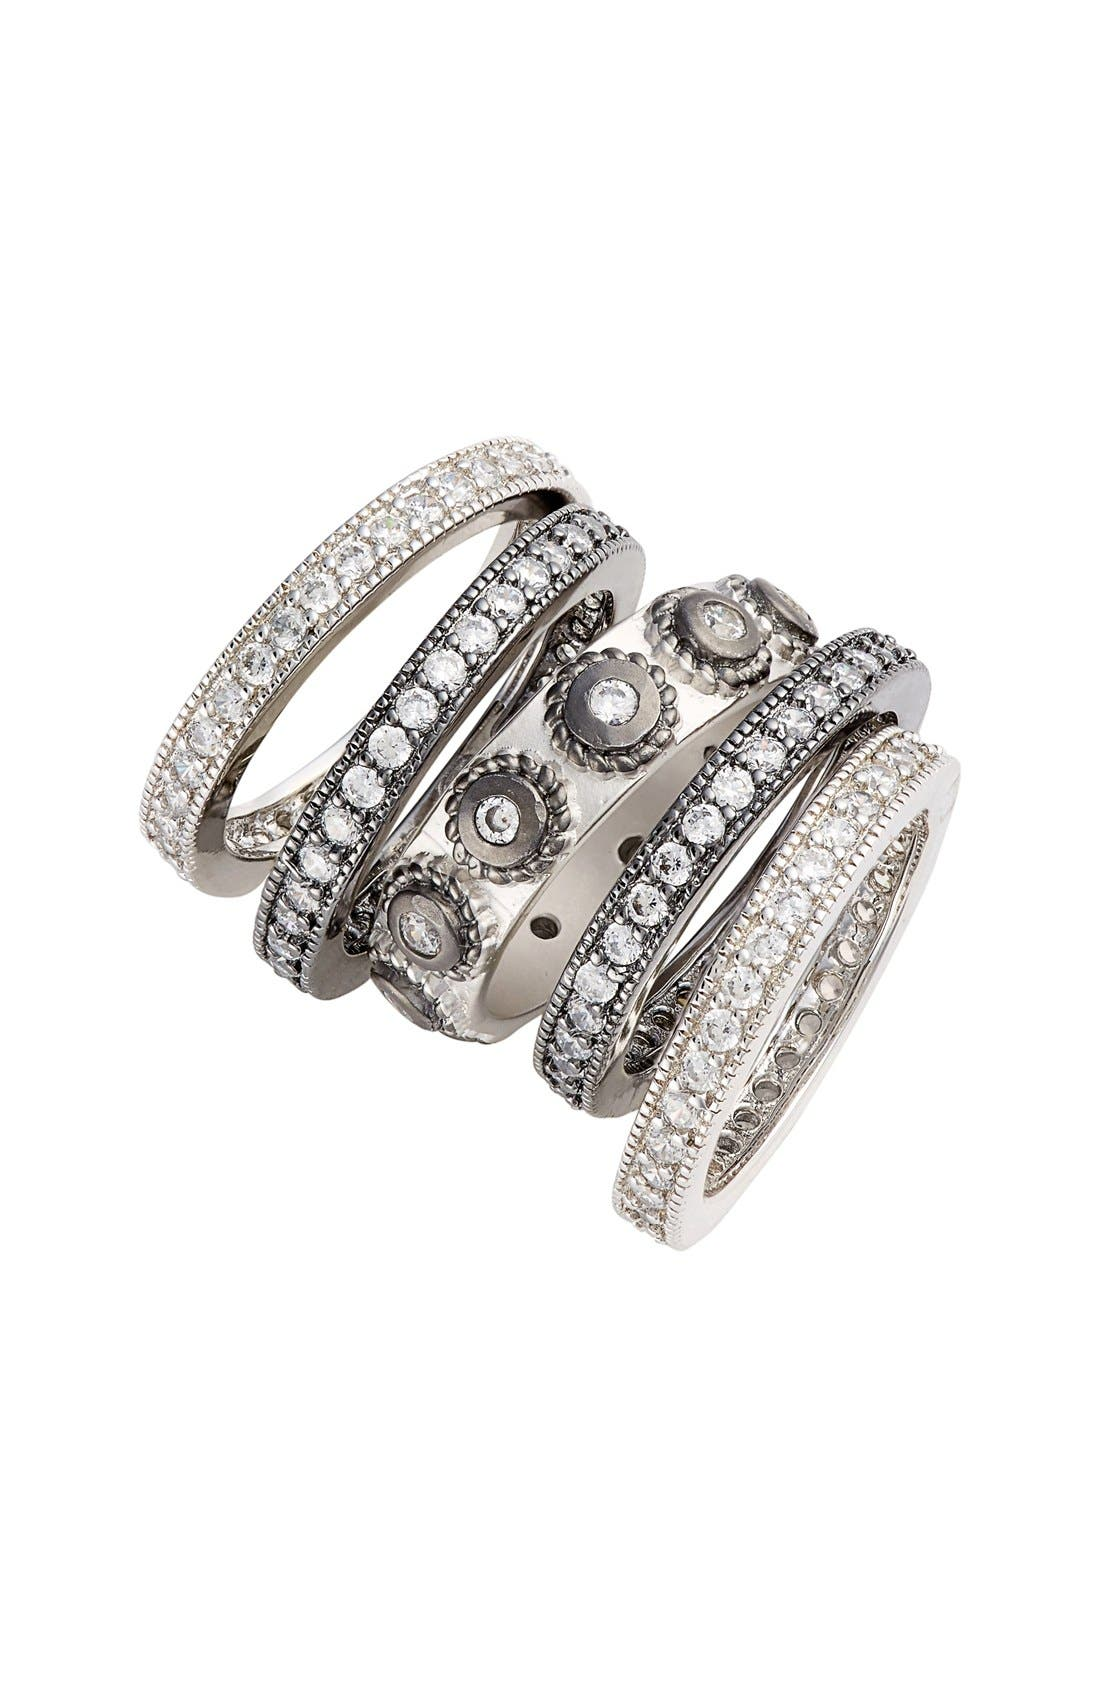 Main Image - FREIDA ROTHMAN 'Contemporary Deco' Stacking Rings (Set of 5)